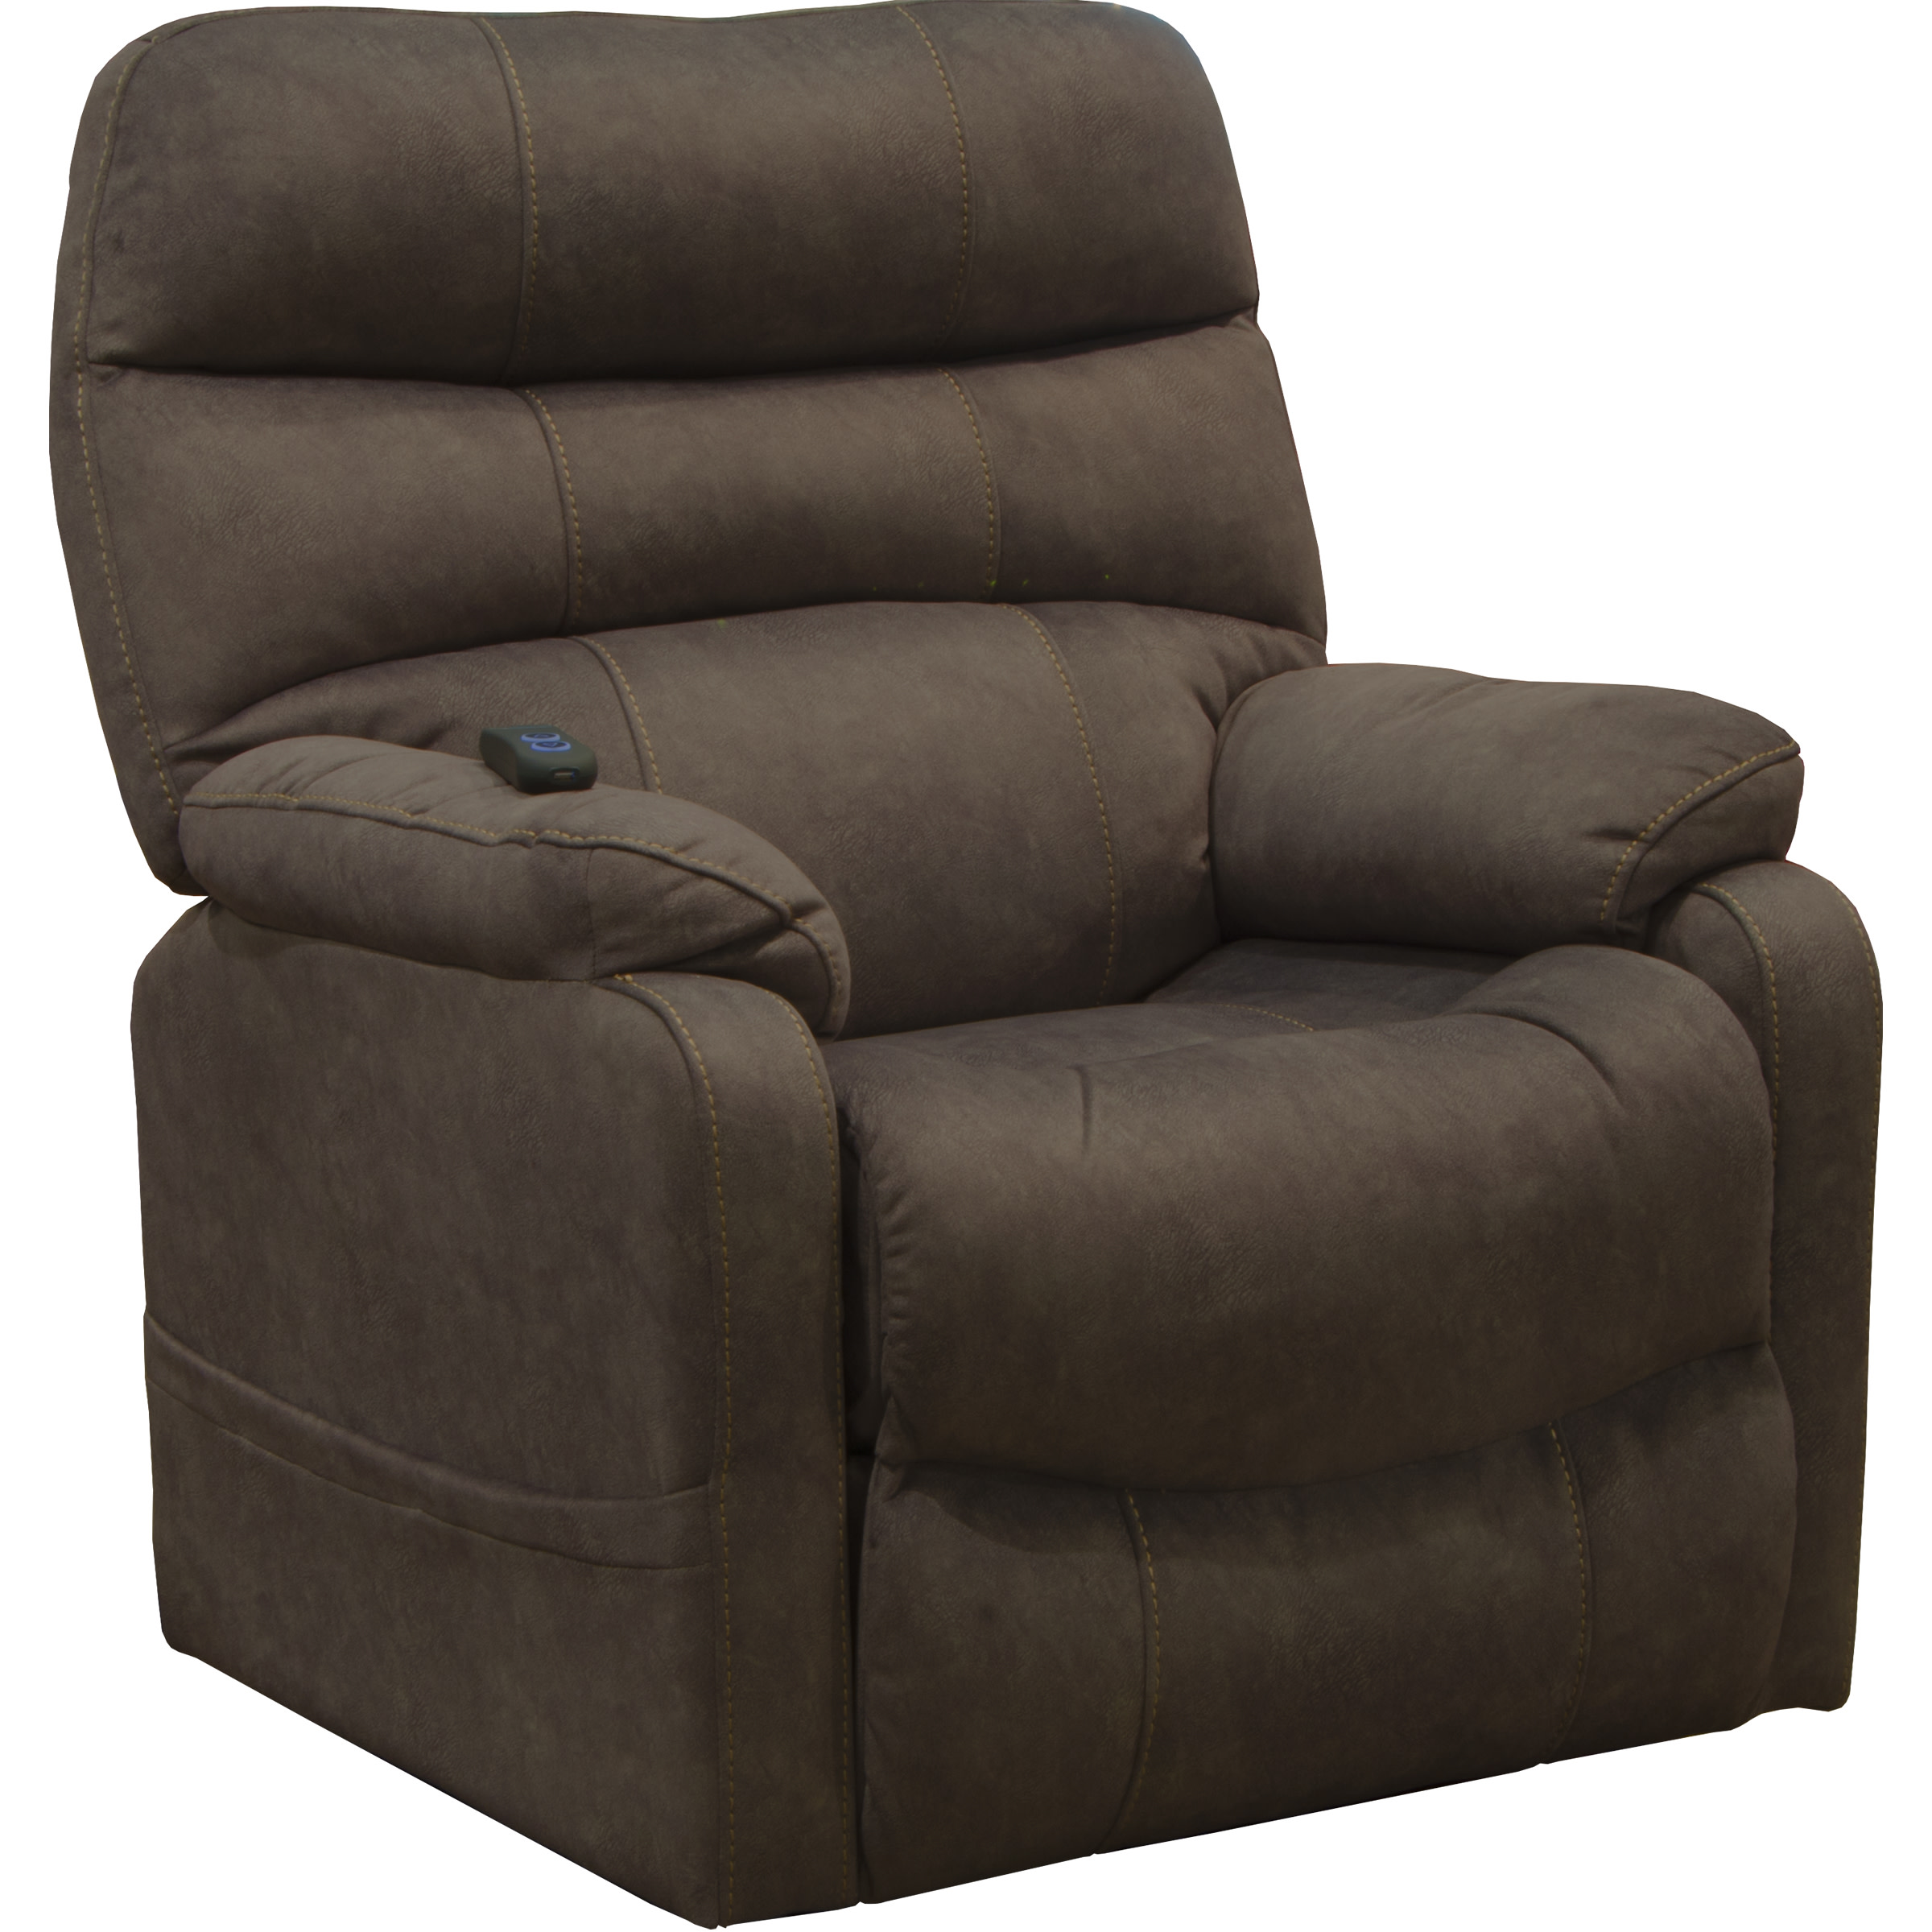 Buckley Lift Chair